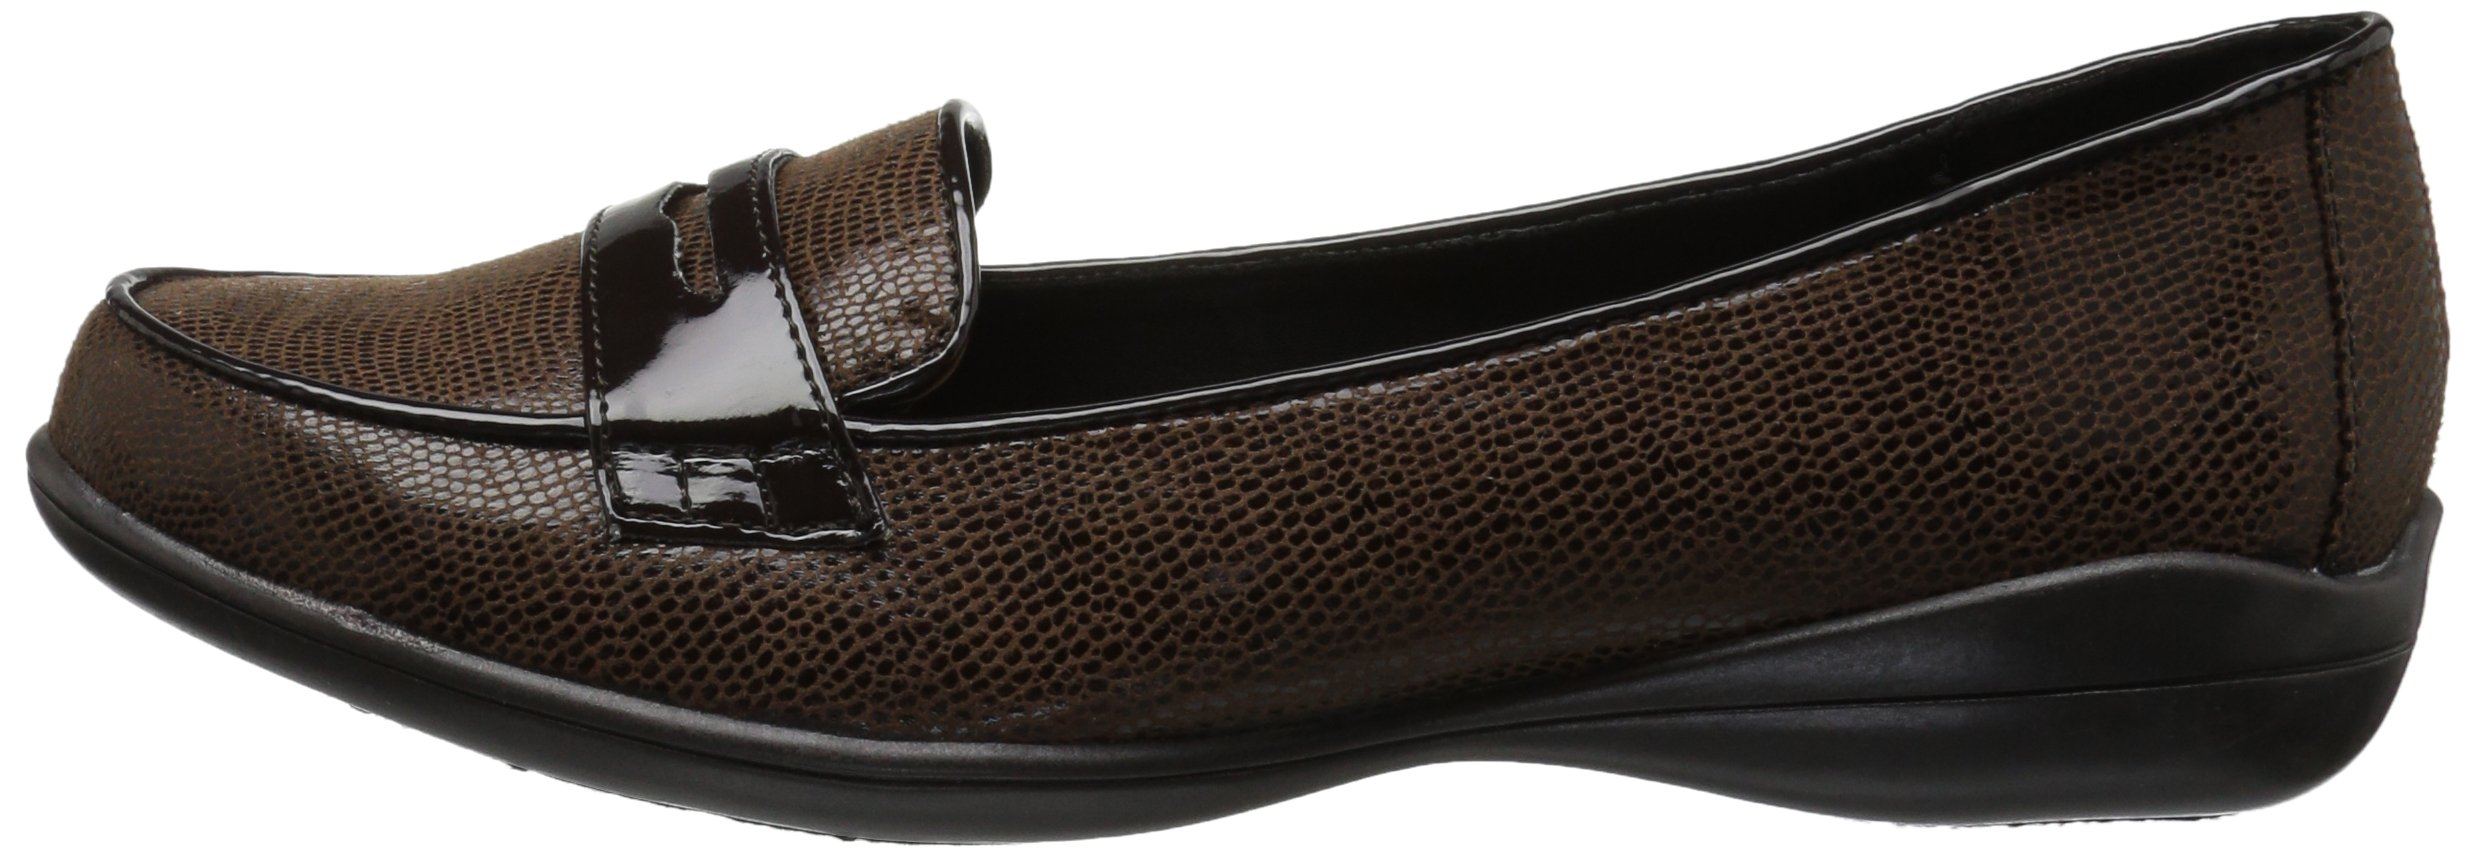 Soft Style by Hush Puppies Women's Daly Penny Loafer, Dark Brown Lizard/Patent, 8.5 W US by Soft Style (Image #5)